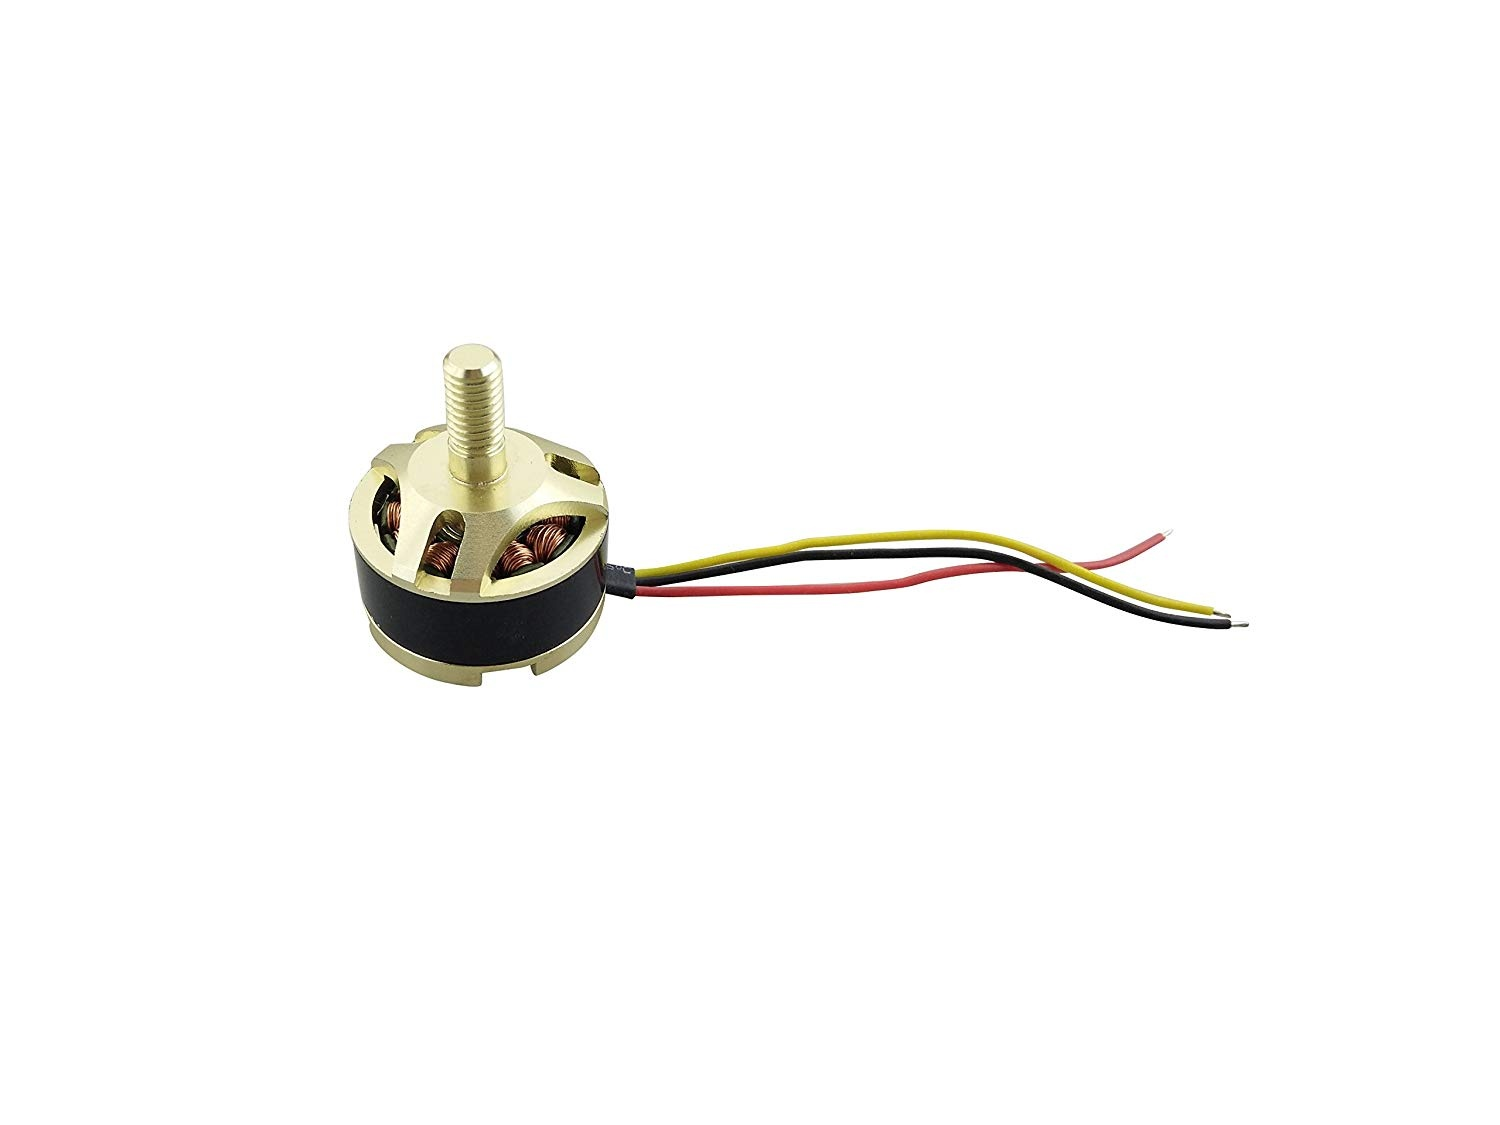 For Hubsan X4 H501S H501C H501A Drone Forward//Reverse Motor 4PCS Brushless Motor